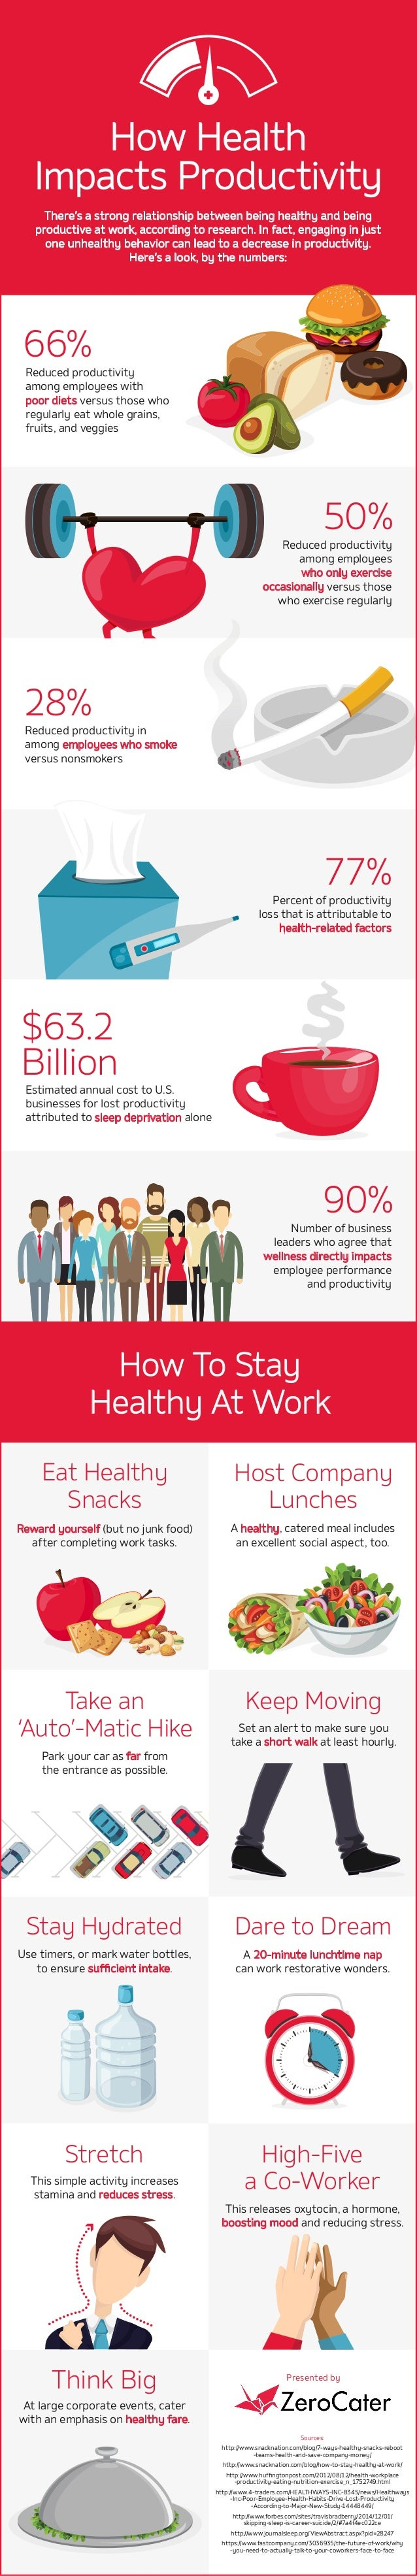 ZeroCater Infographic - Healthy Habits/Productivity Link